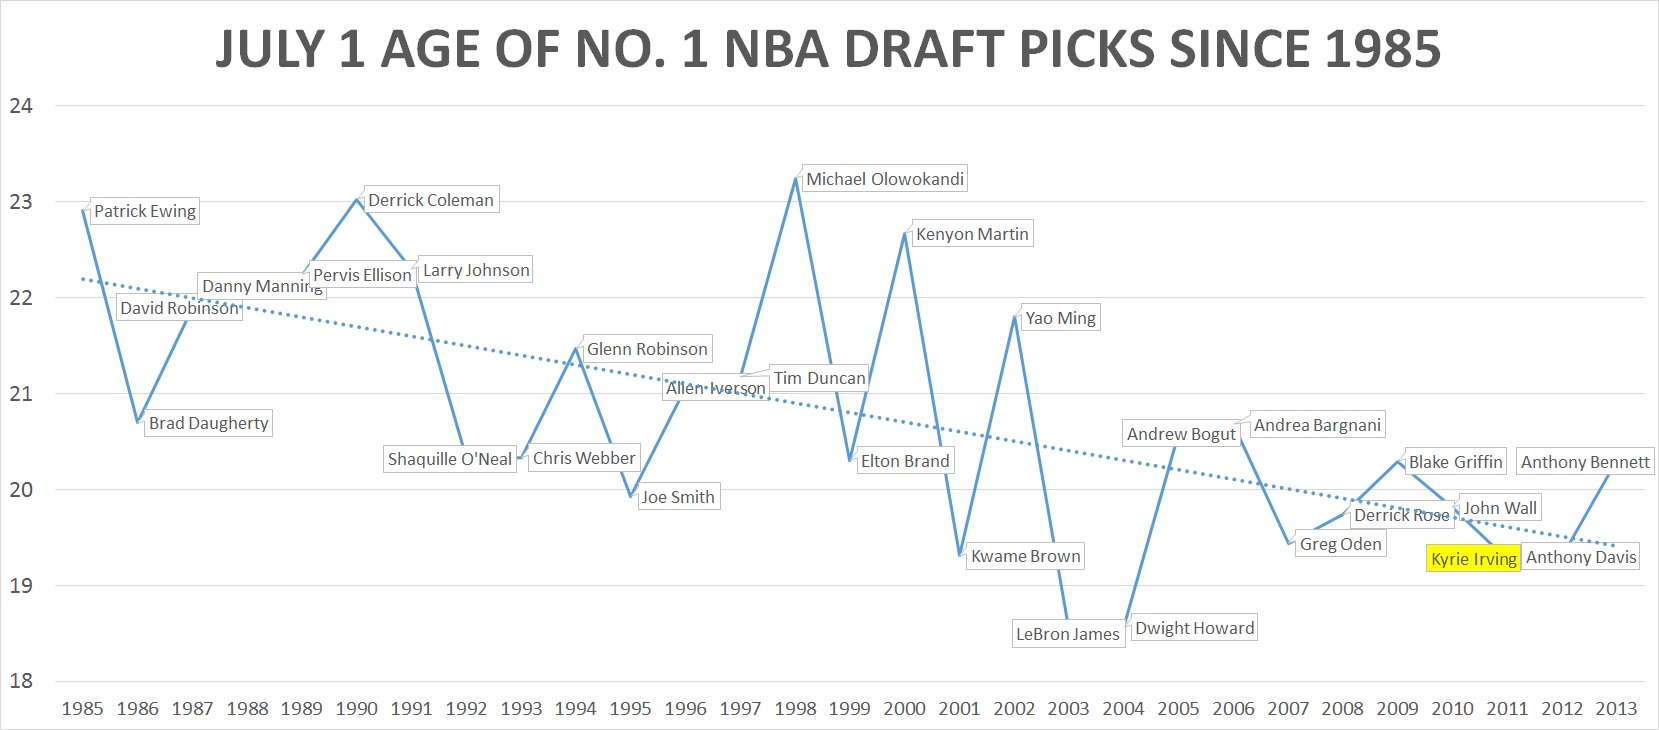 no 1 nba draft pick ages since 1985